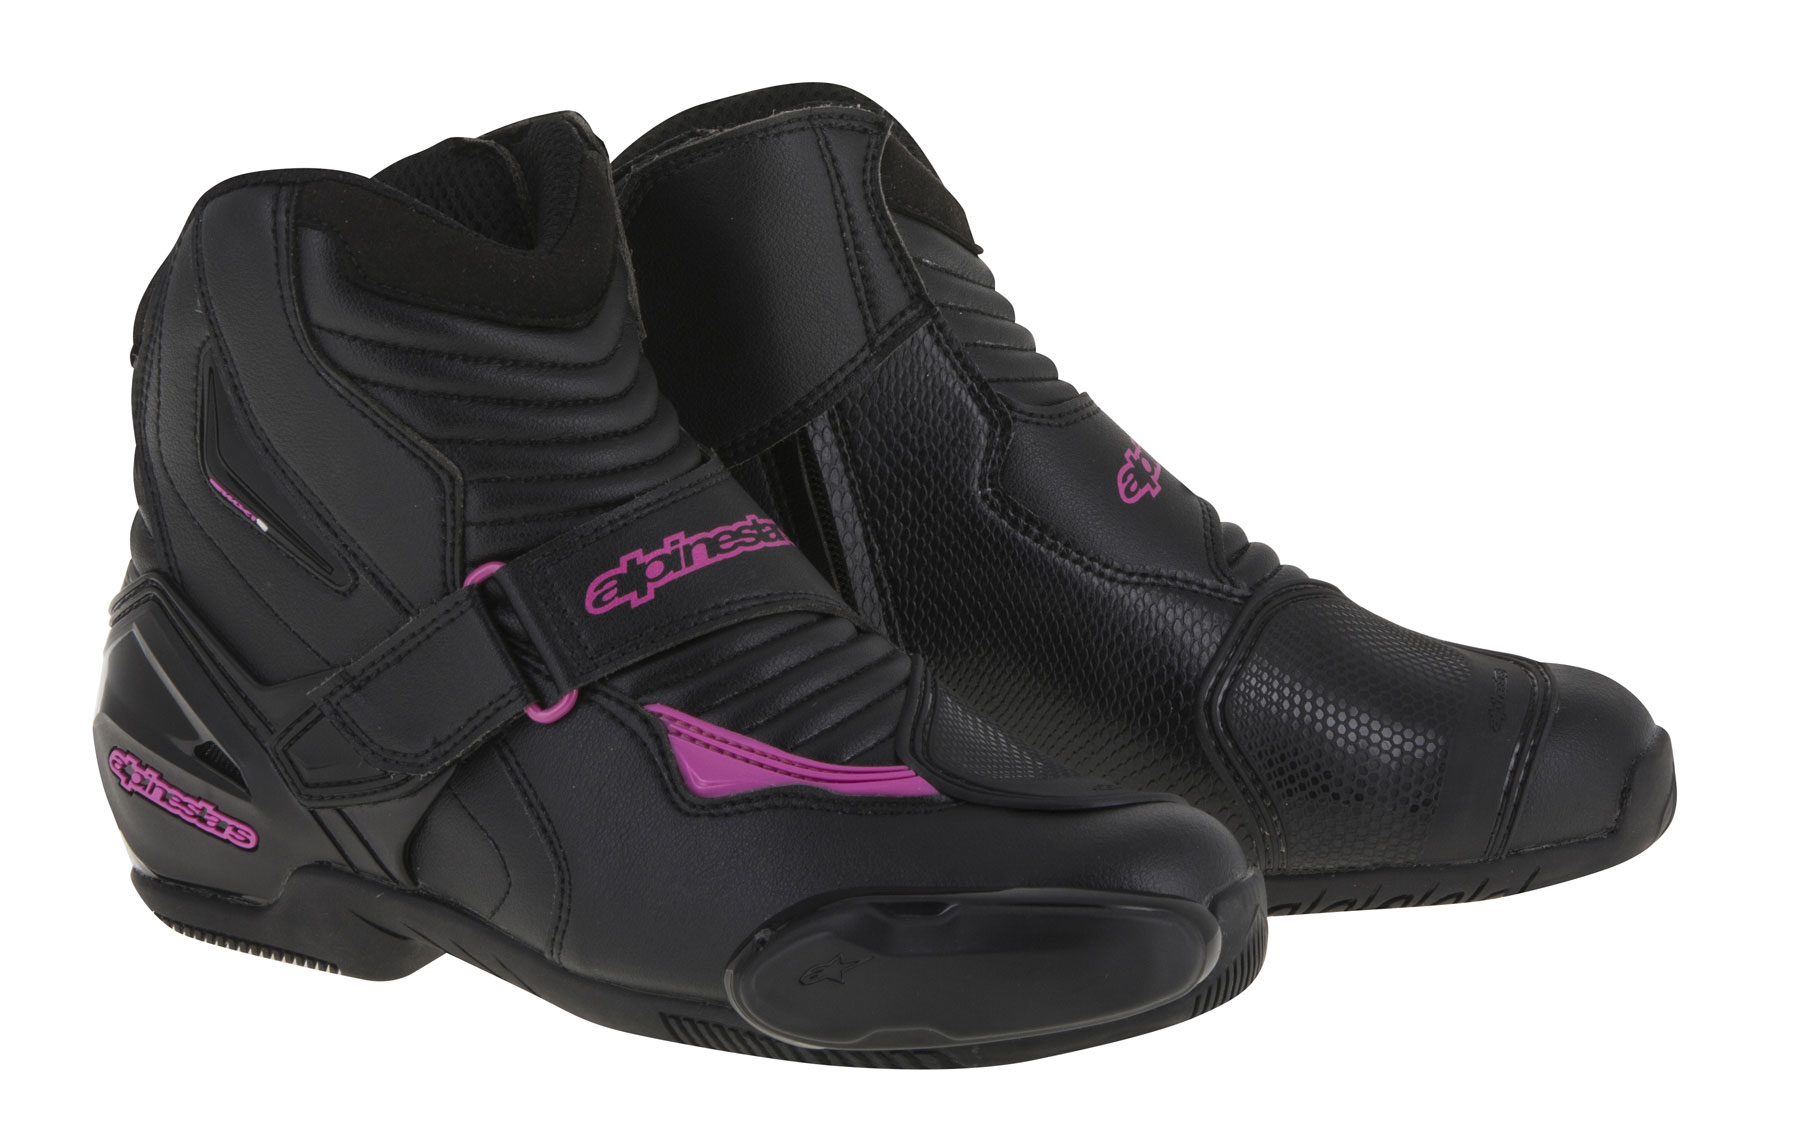 Alpinestars Stella SMX-1 R Low-Cut Boots (Black/Pink)